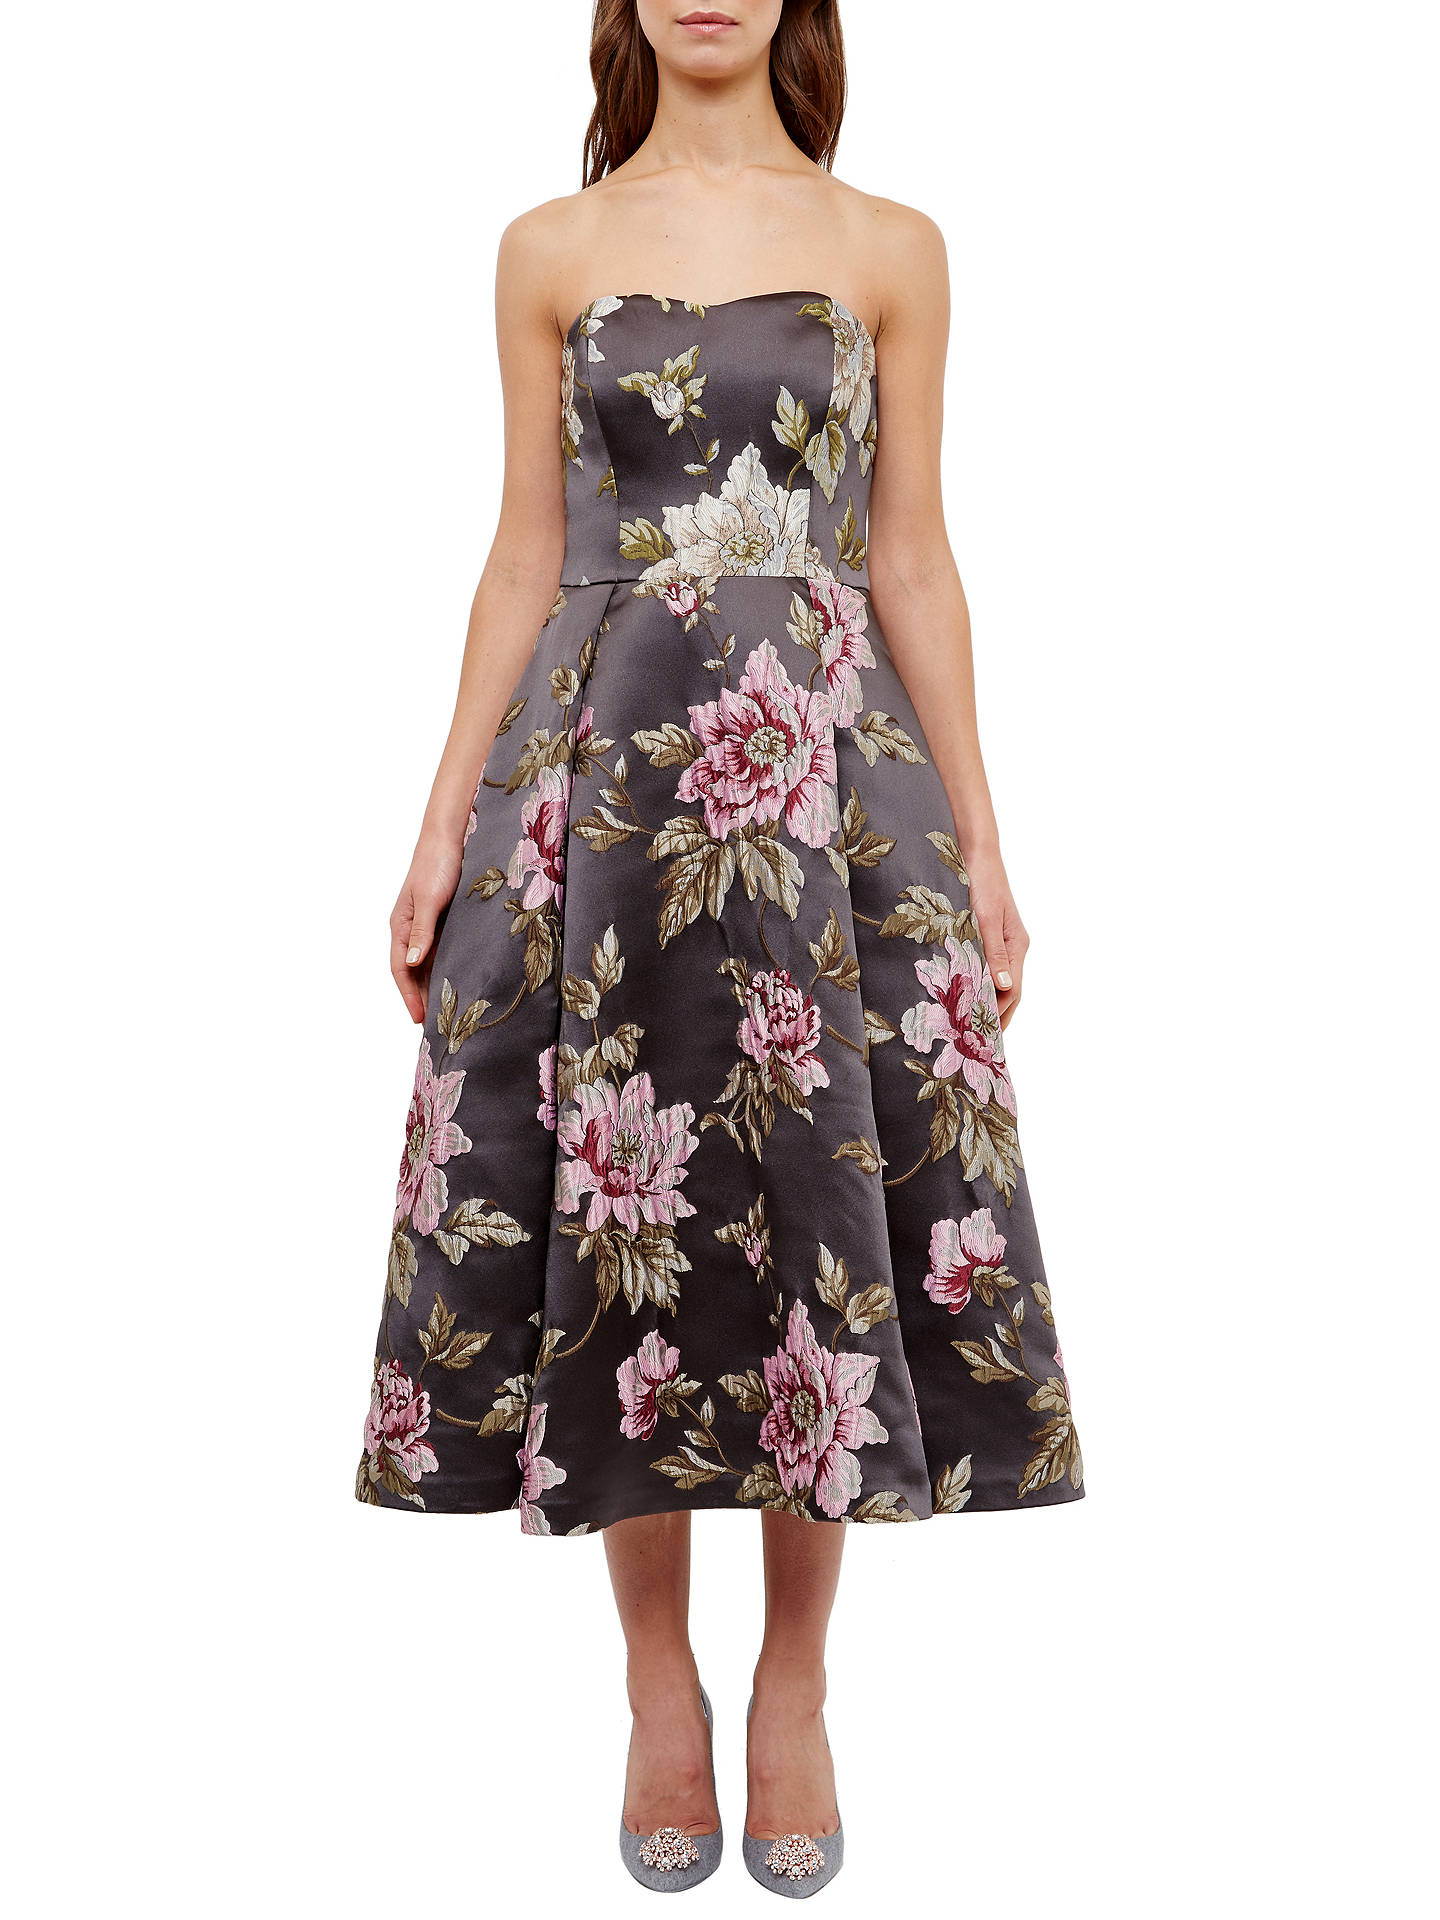 e811a78b2 ... Buy Ted Baker Bernica Floral Jacquard Dress